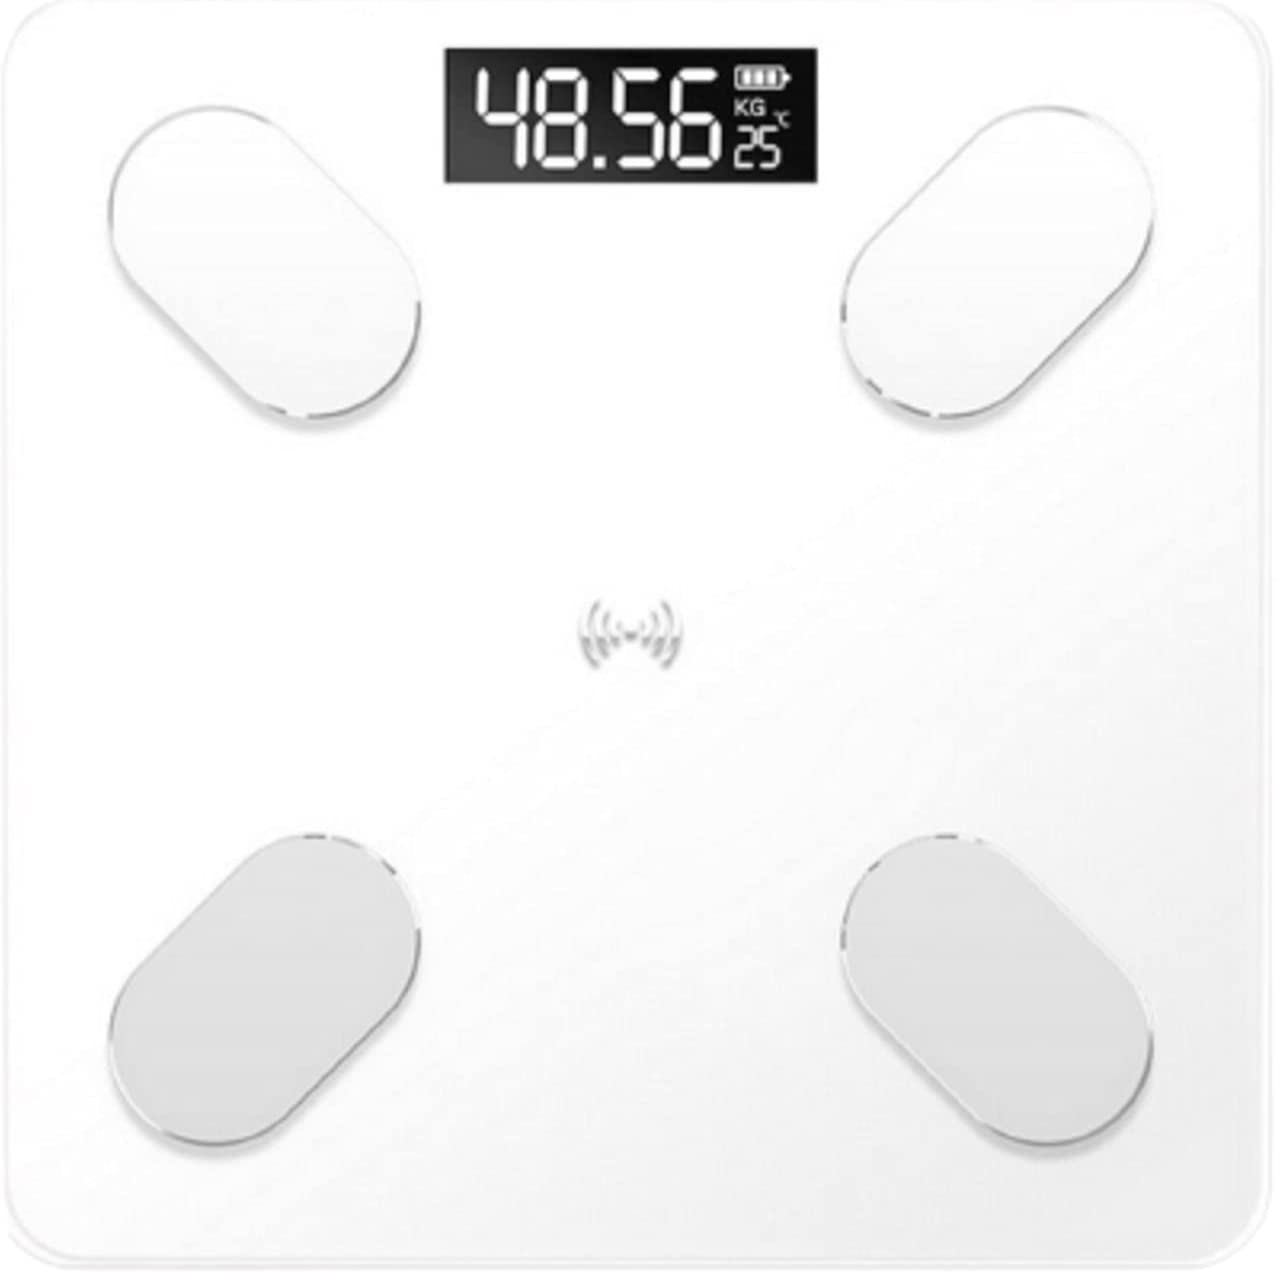 N\C Now on sale free Bluetooth Scales Floor Body Smart Weight Back Bathroom Scale